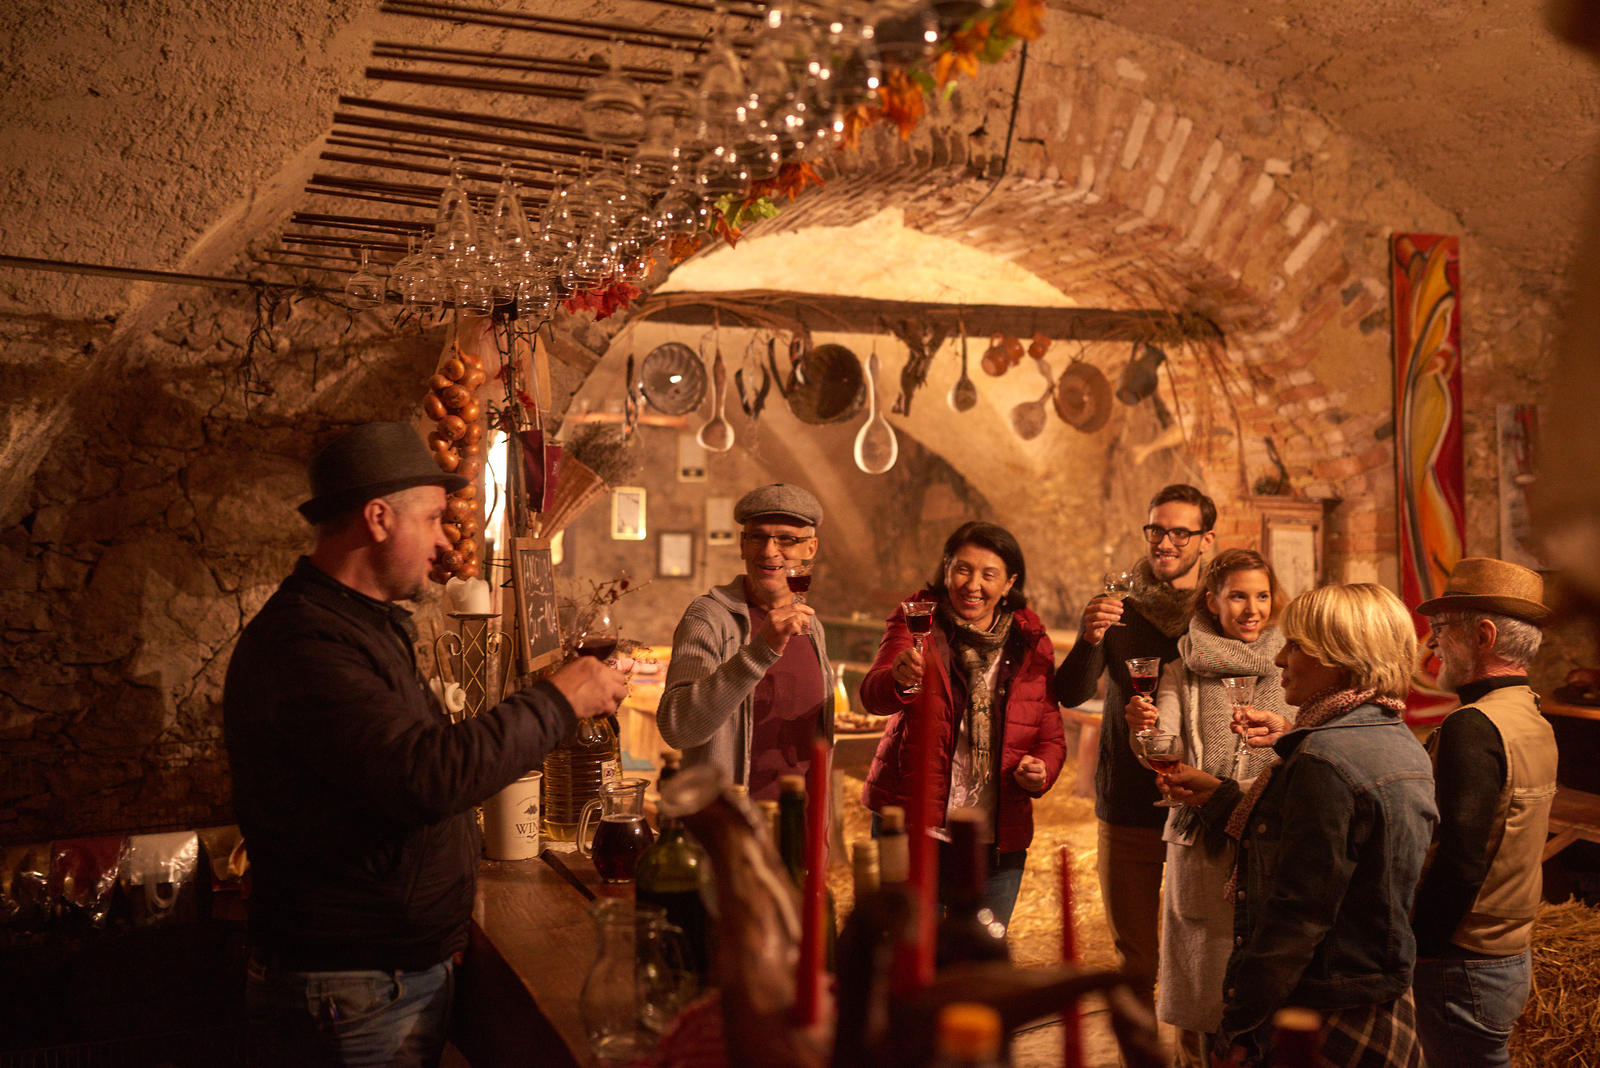 Wine enthusiasts toast Slovenia's young wine in a wine cellar